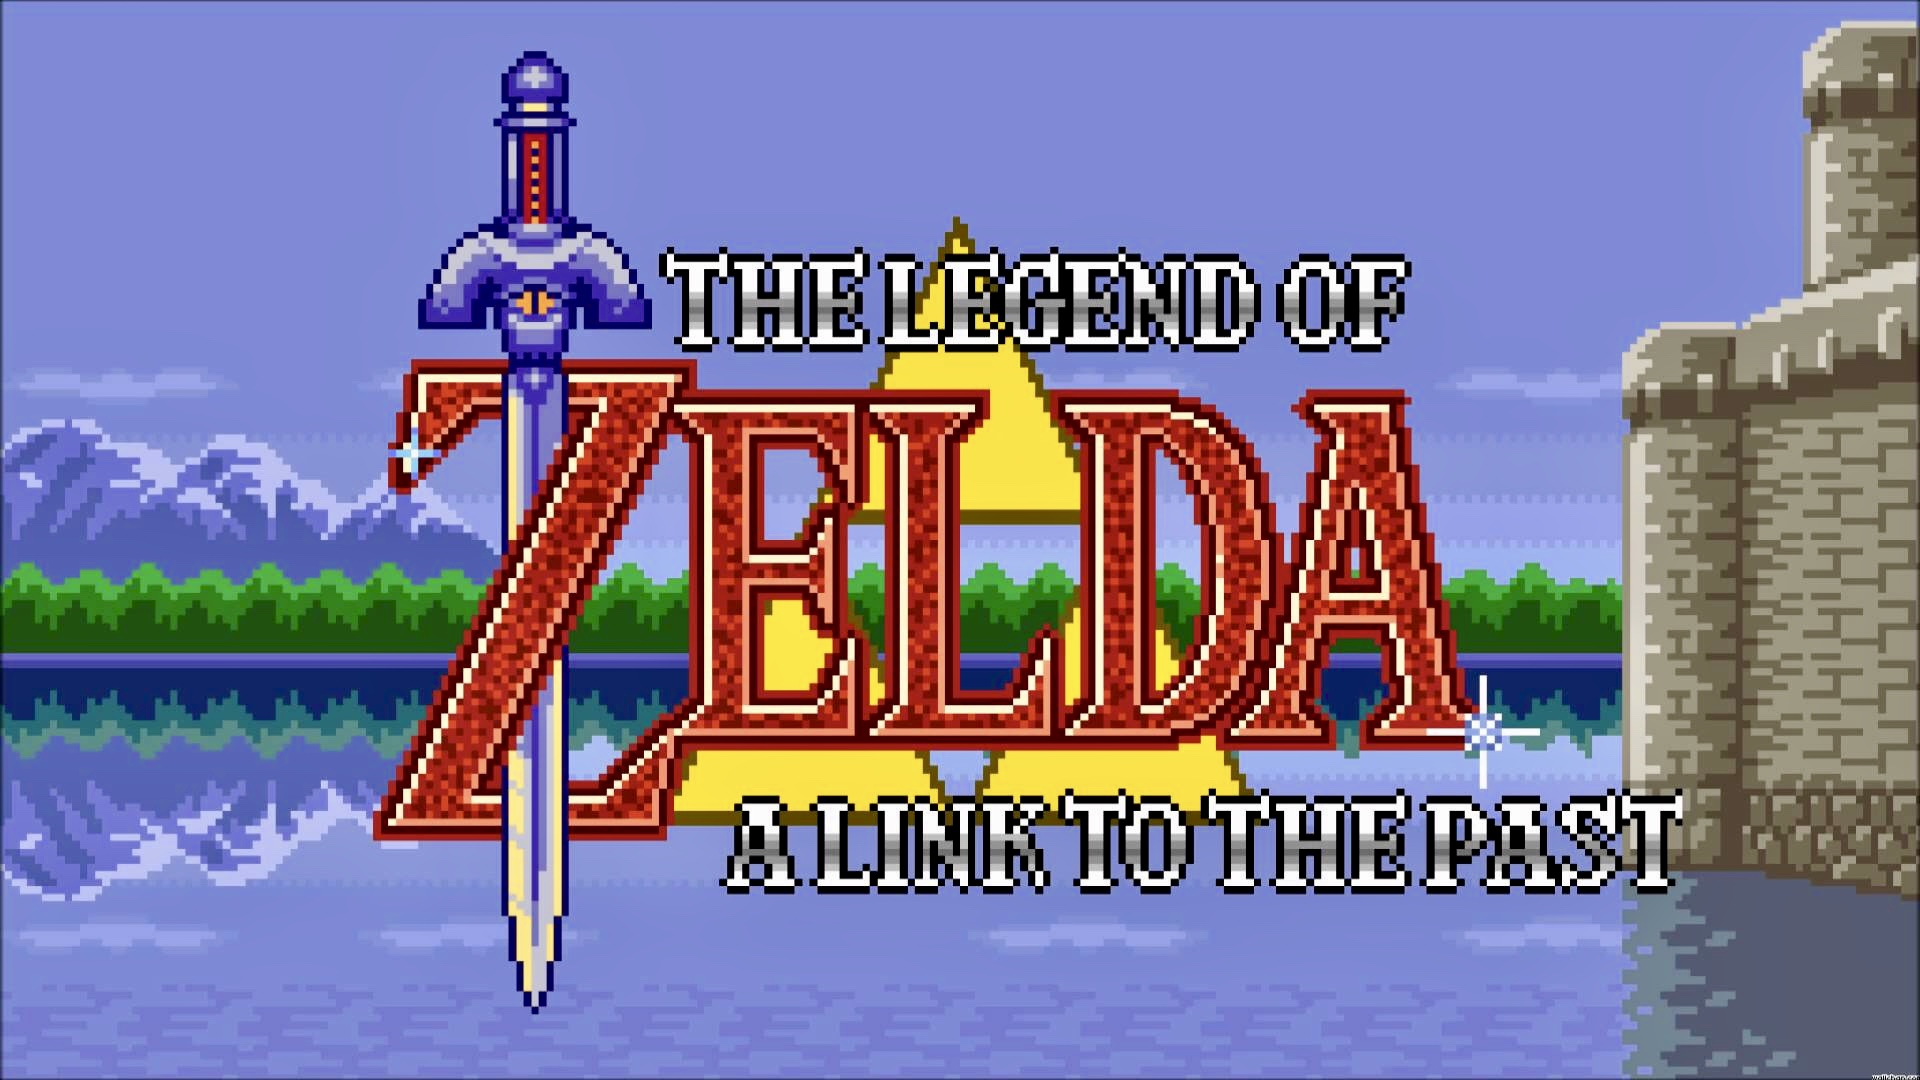 Zelda A Link to the Past